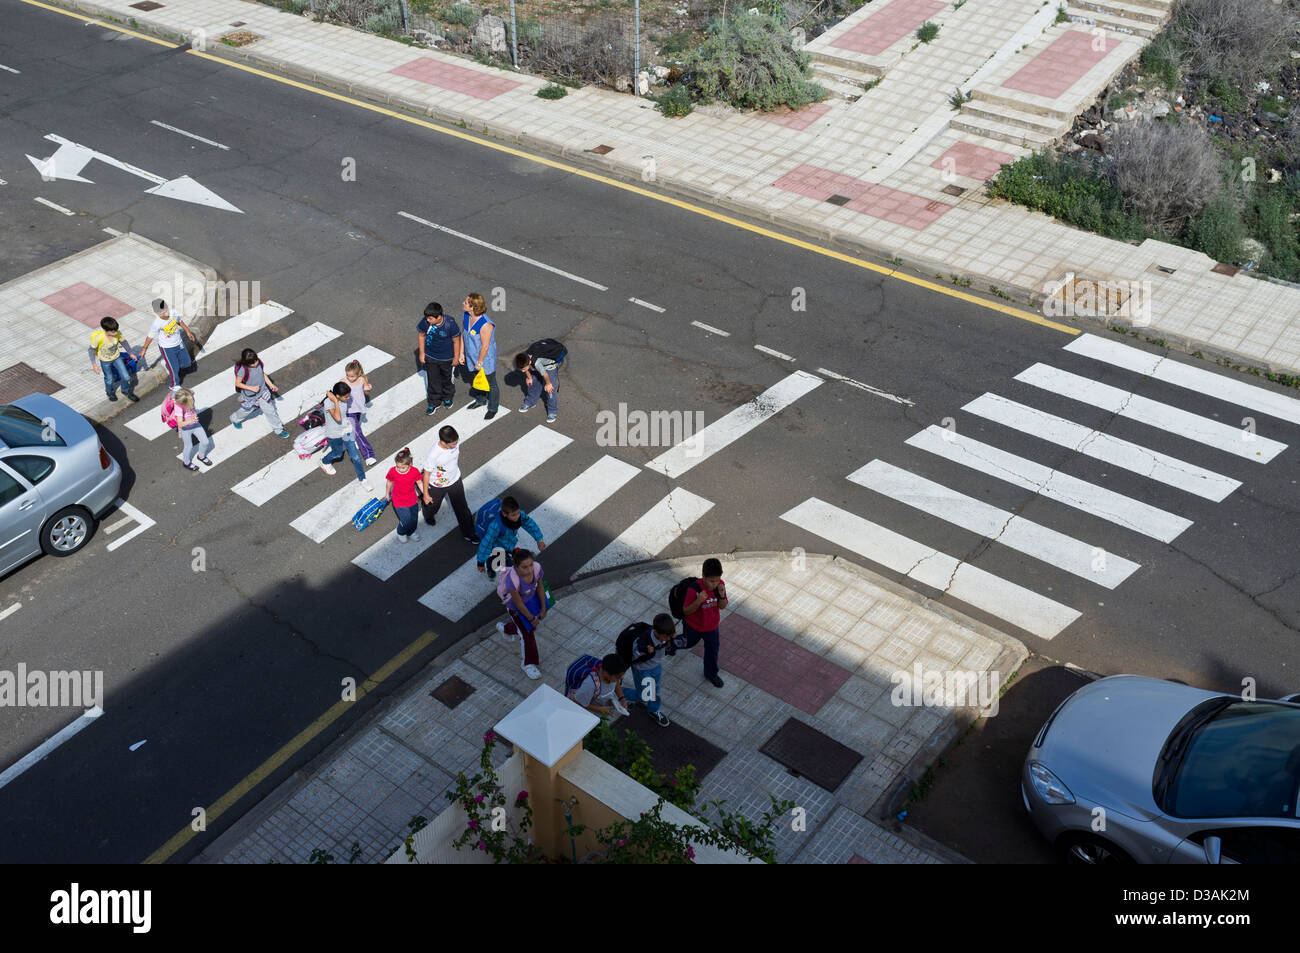 nursery school children being escorted across a pedestrian nursery school children being escorted across a pedestrian crossing by an adult supervisor aerial view